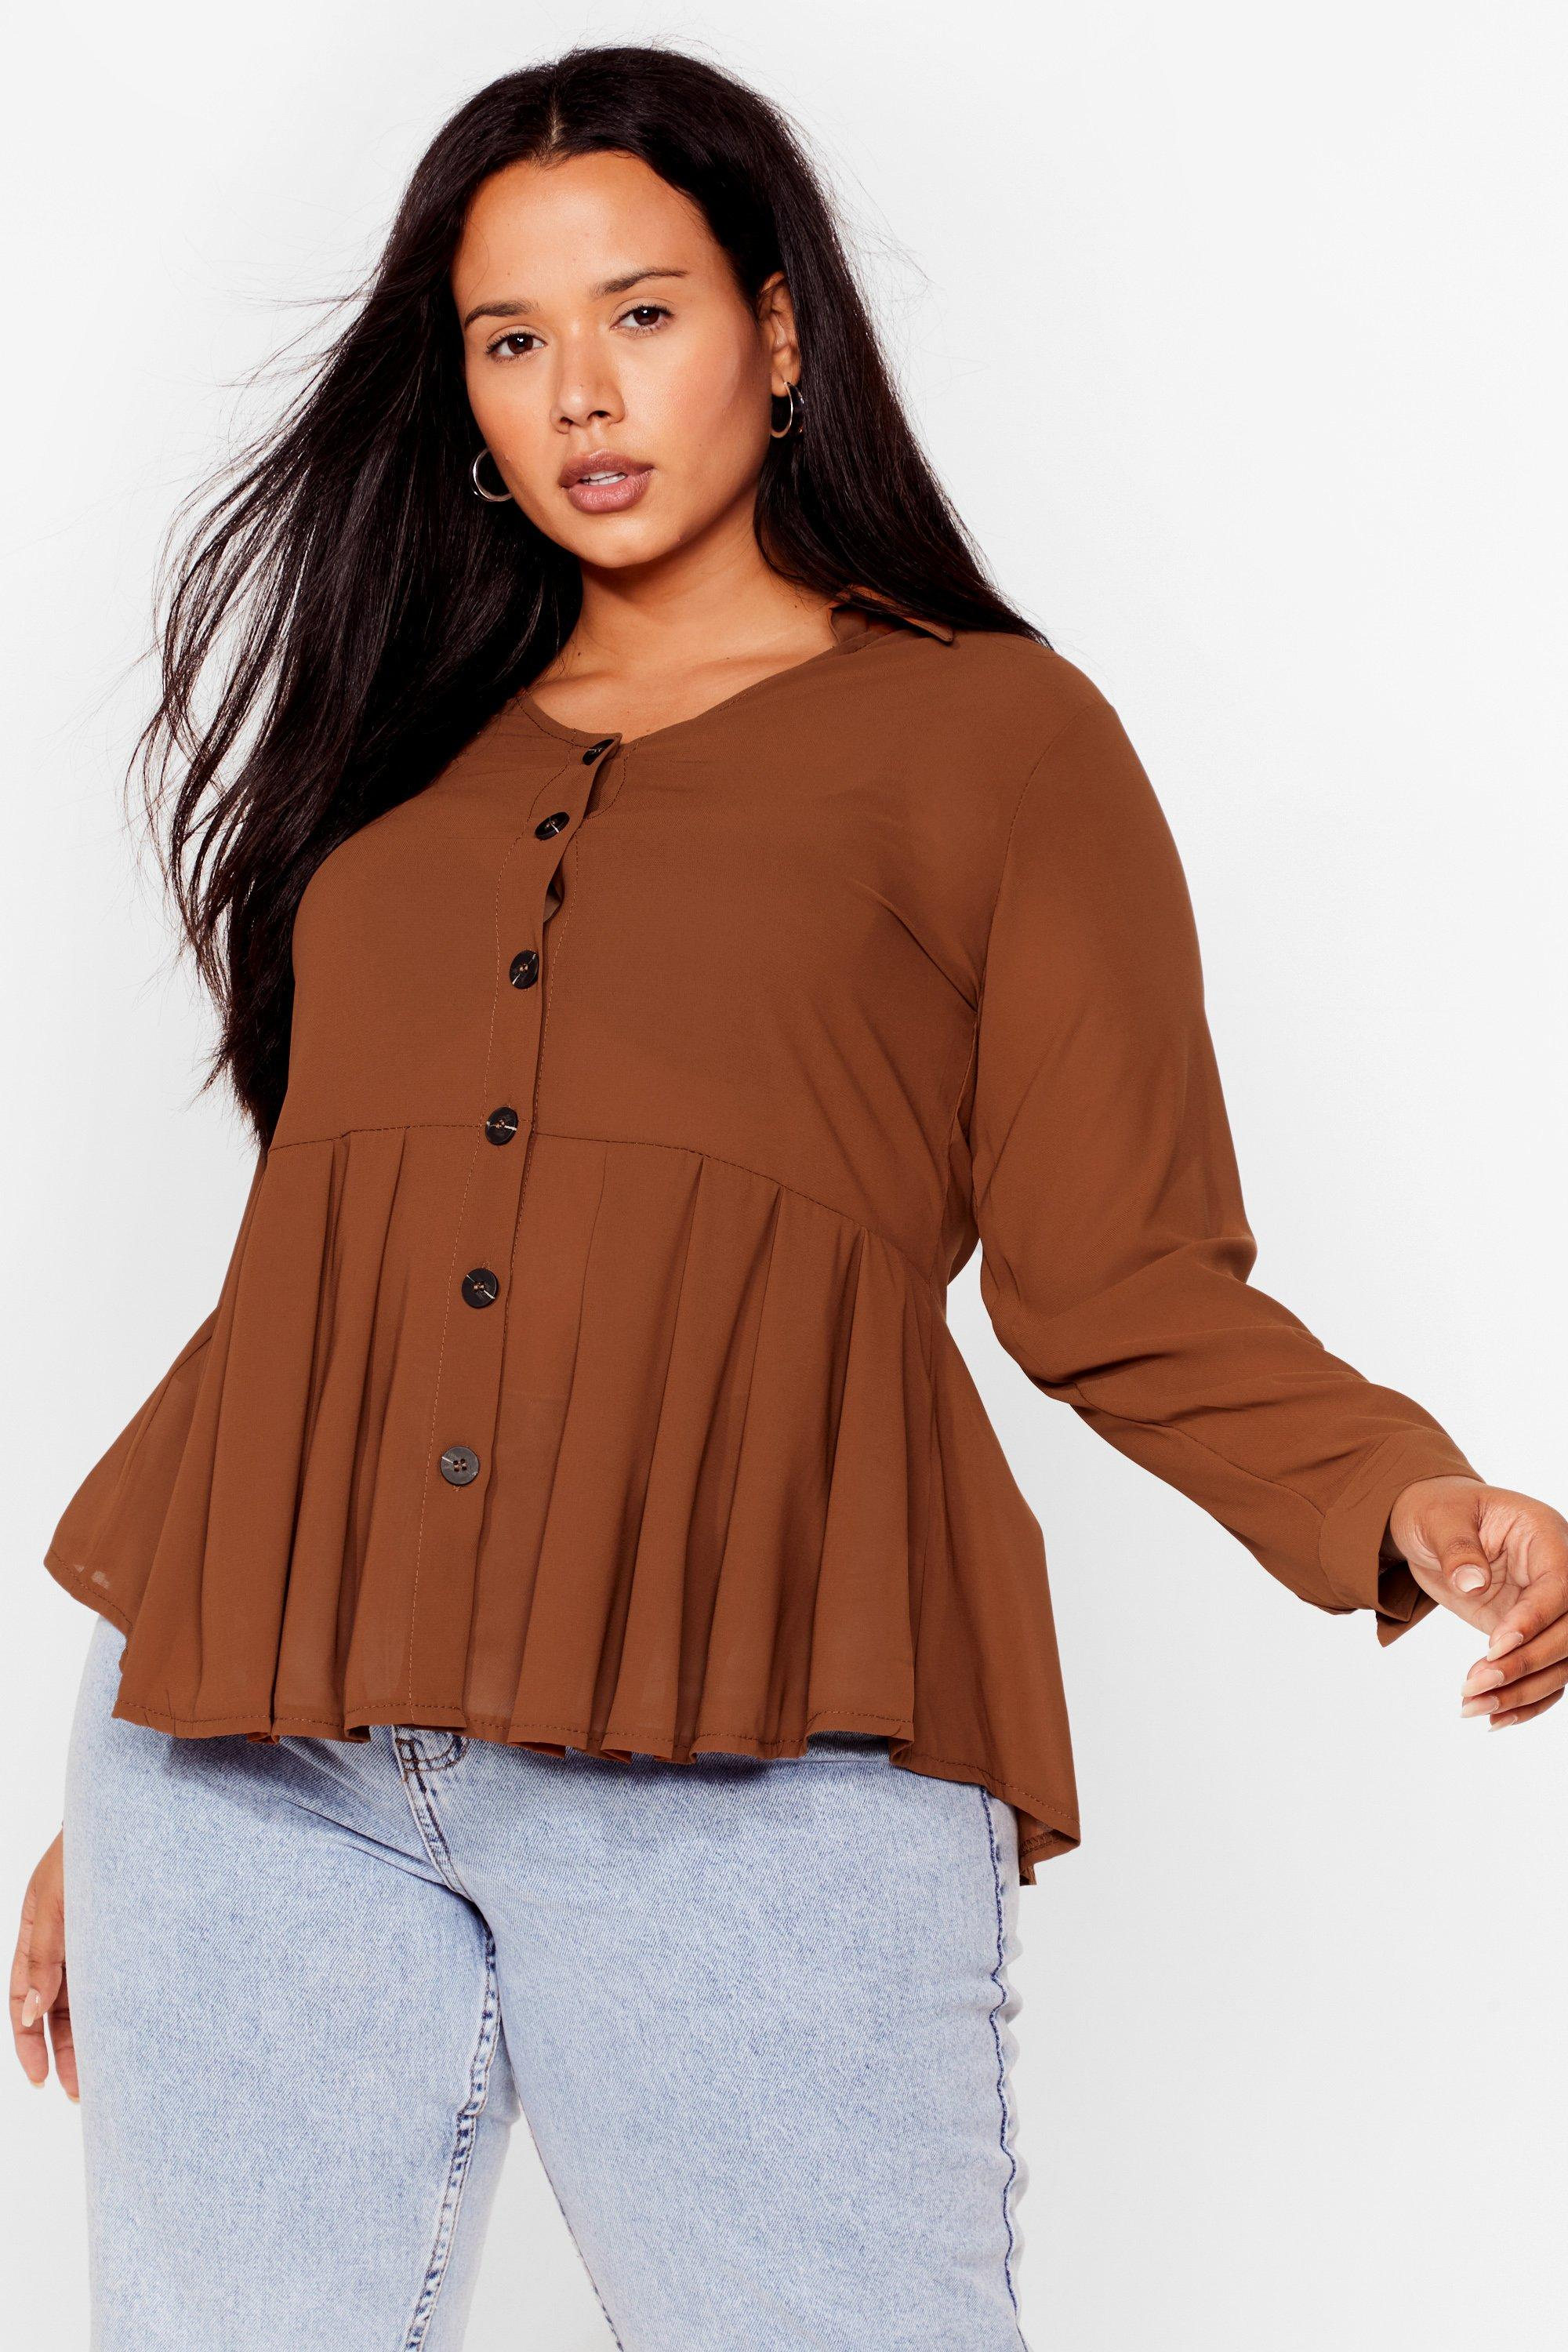 Button the Ball Plus Relaxed Top 7